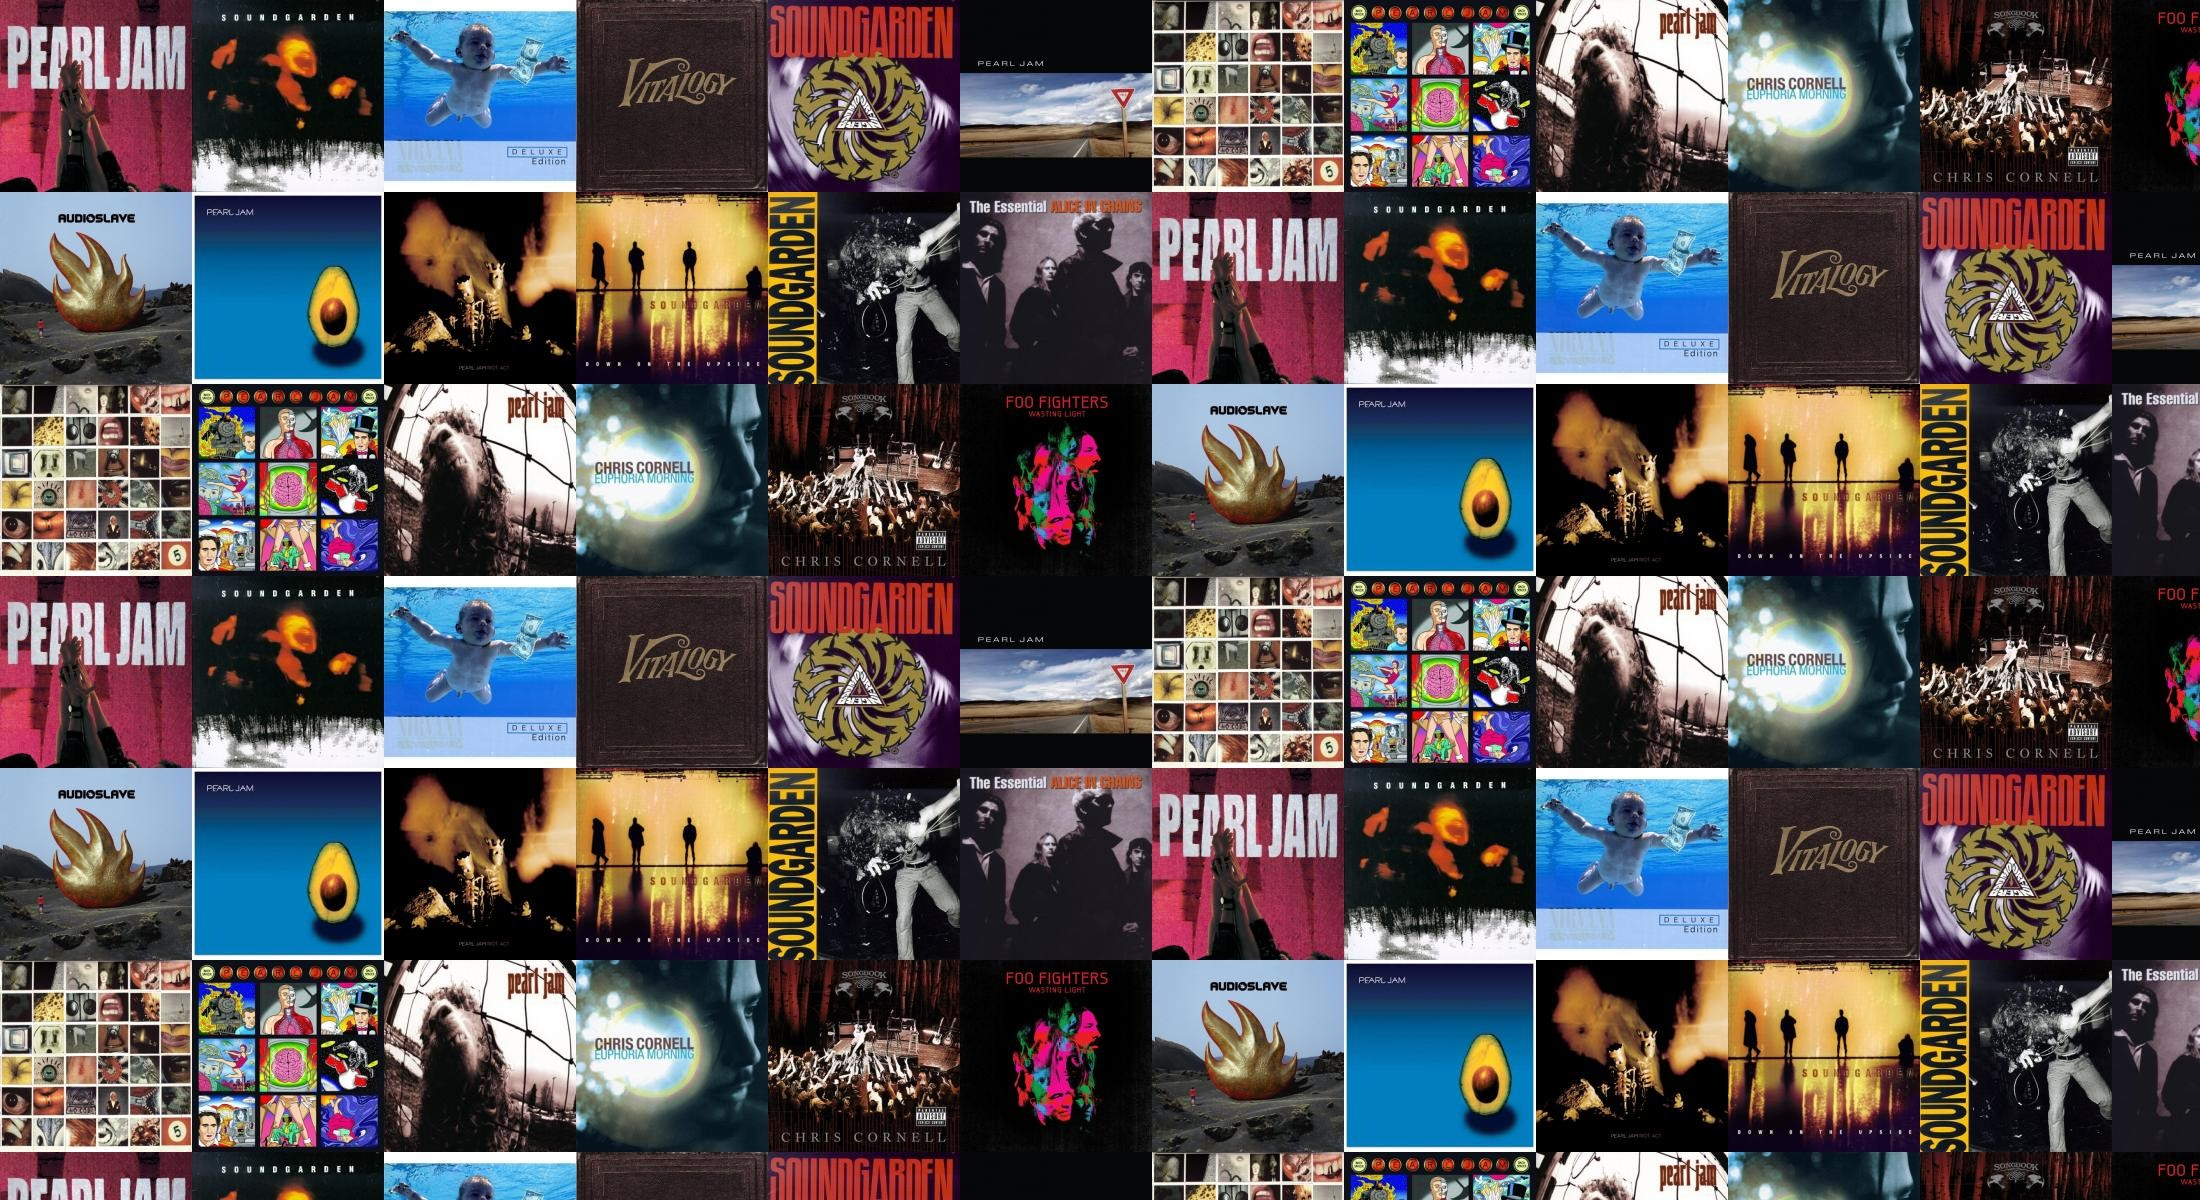 2200x1200 Pearl Jam Ten Soundgarden Superunknown Nirvana Nevermind Wallpaper Â« Tiled  Desktop Wallpaper